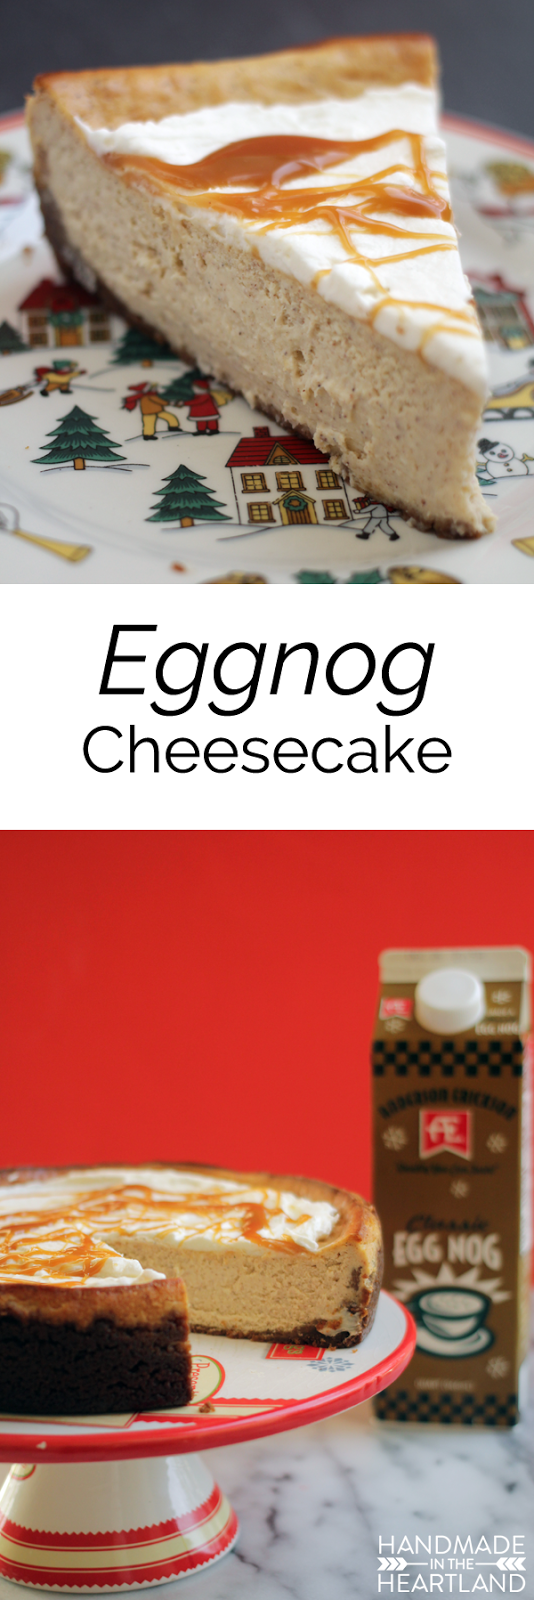 Try a slice of the Egg Nog Cheesecake for your holiday tastes.